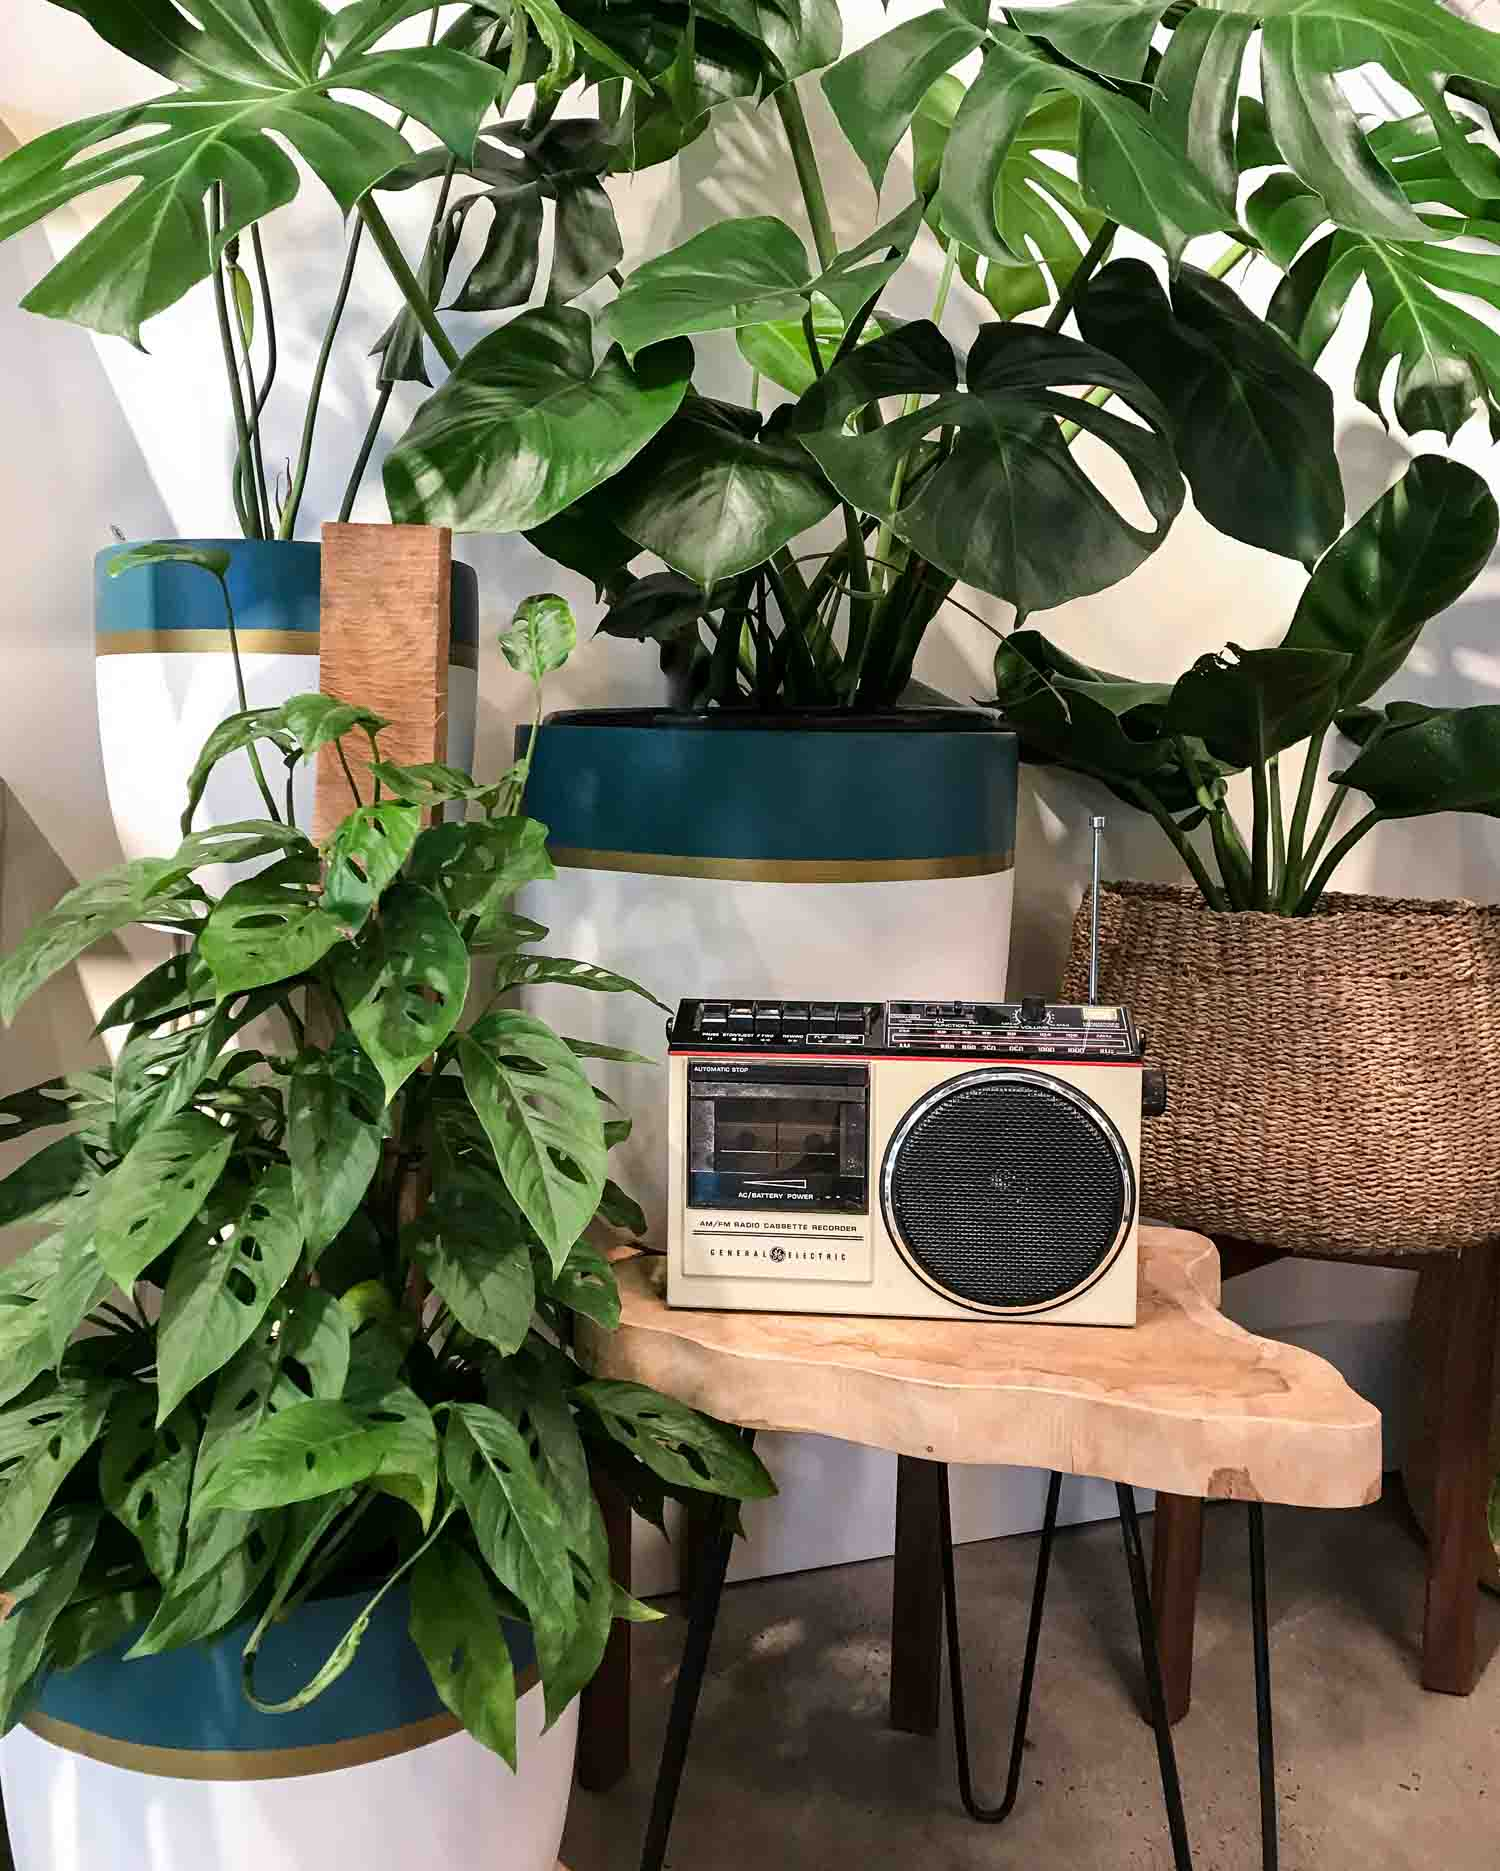 Music and Plant Growth - Pistils Nursery